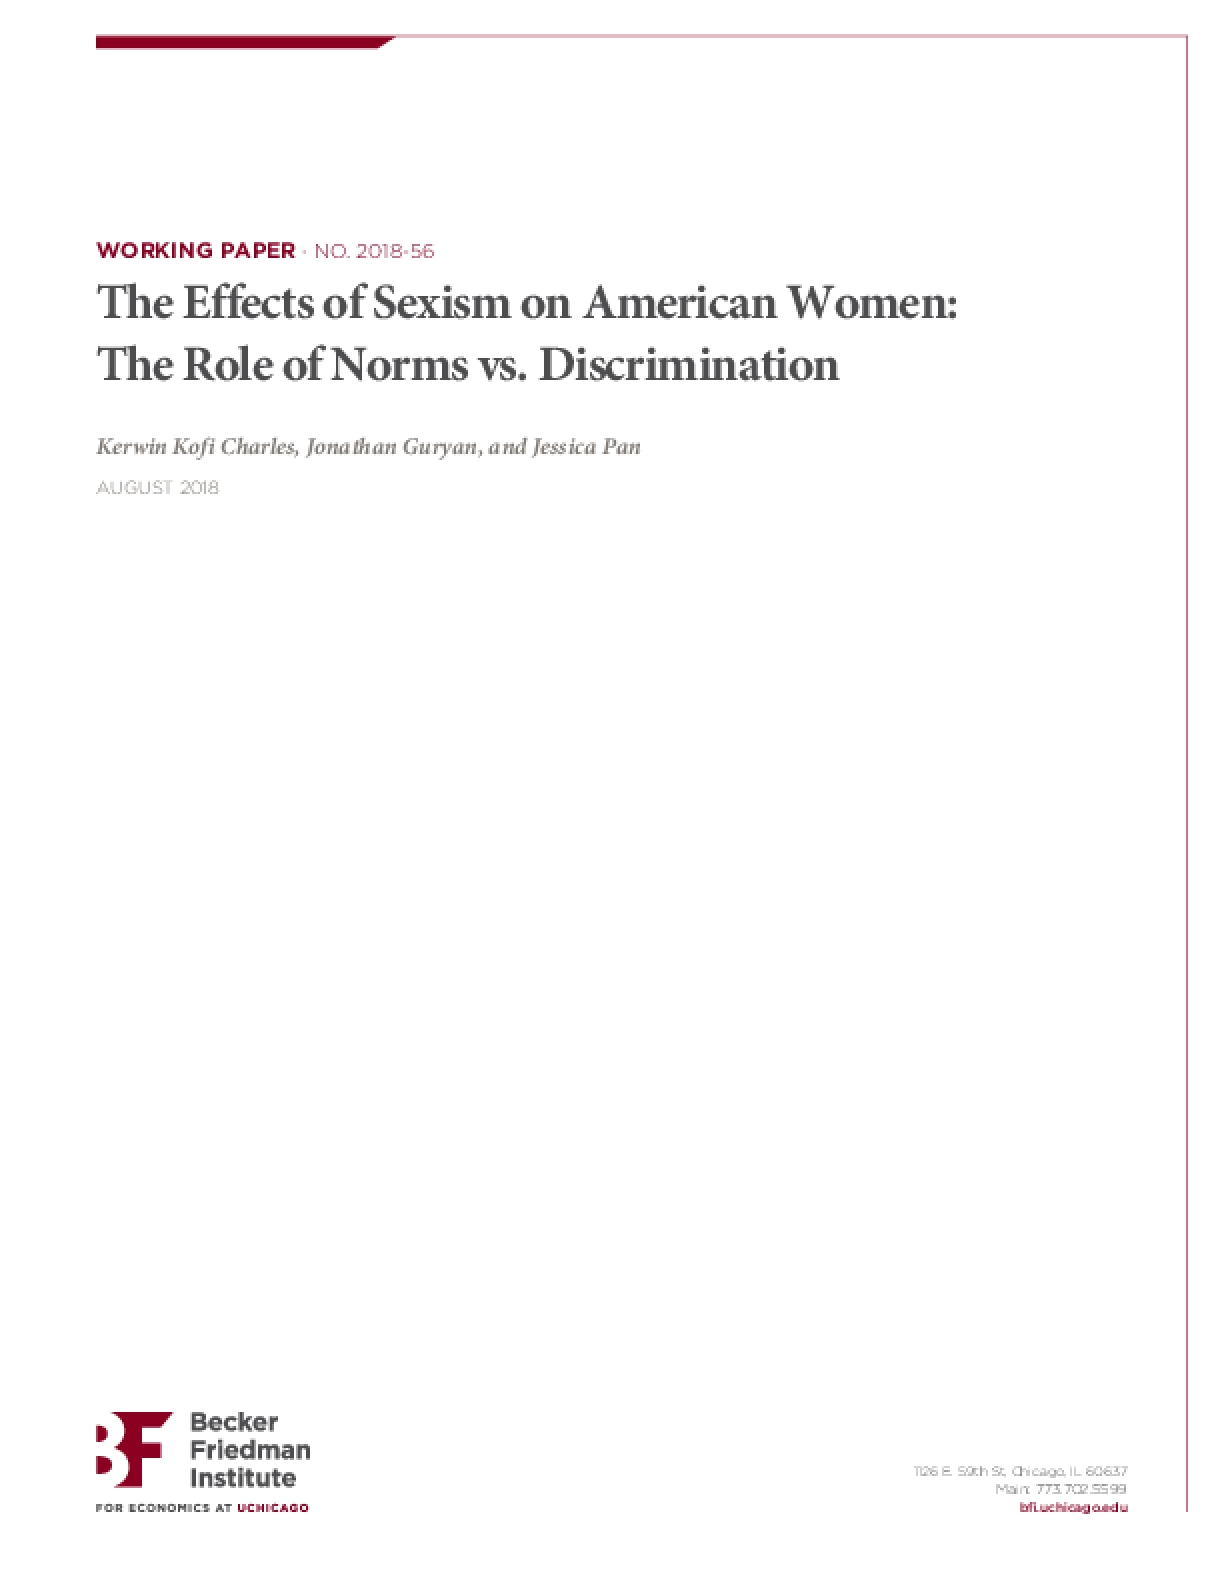 The Effects of Sexism on American Women: The Role of Norms vs. Discrimination